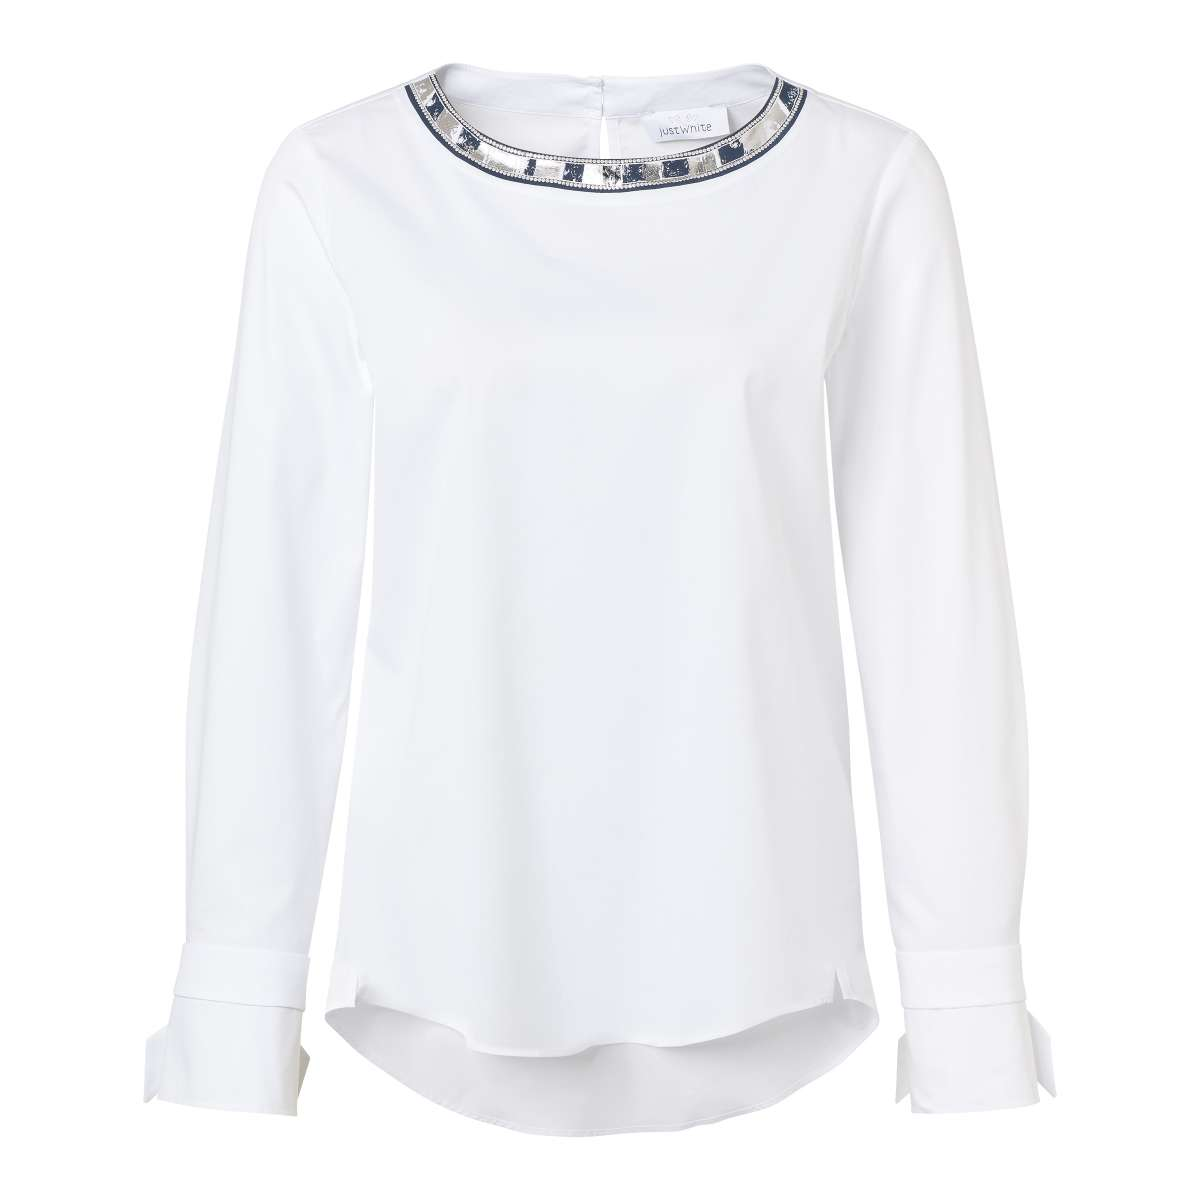 Just white white top 43545